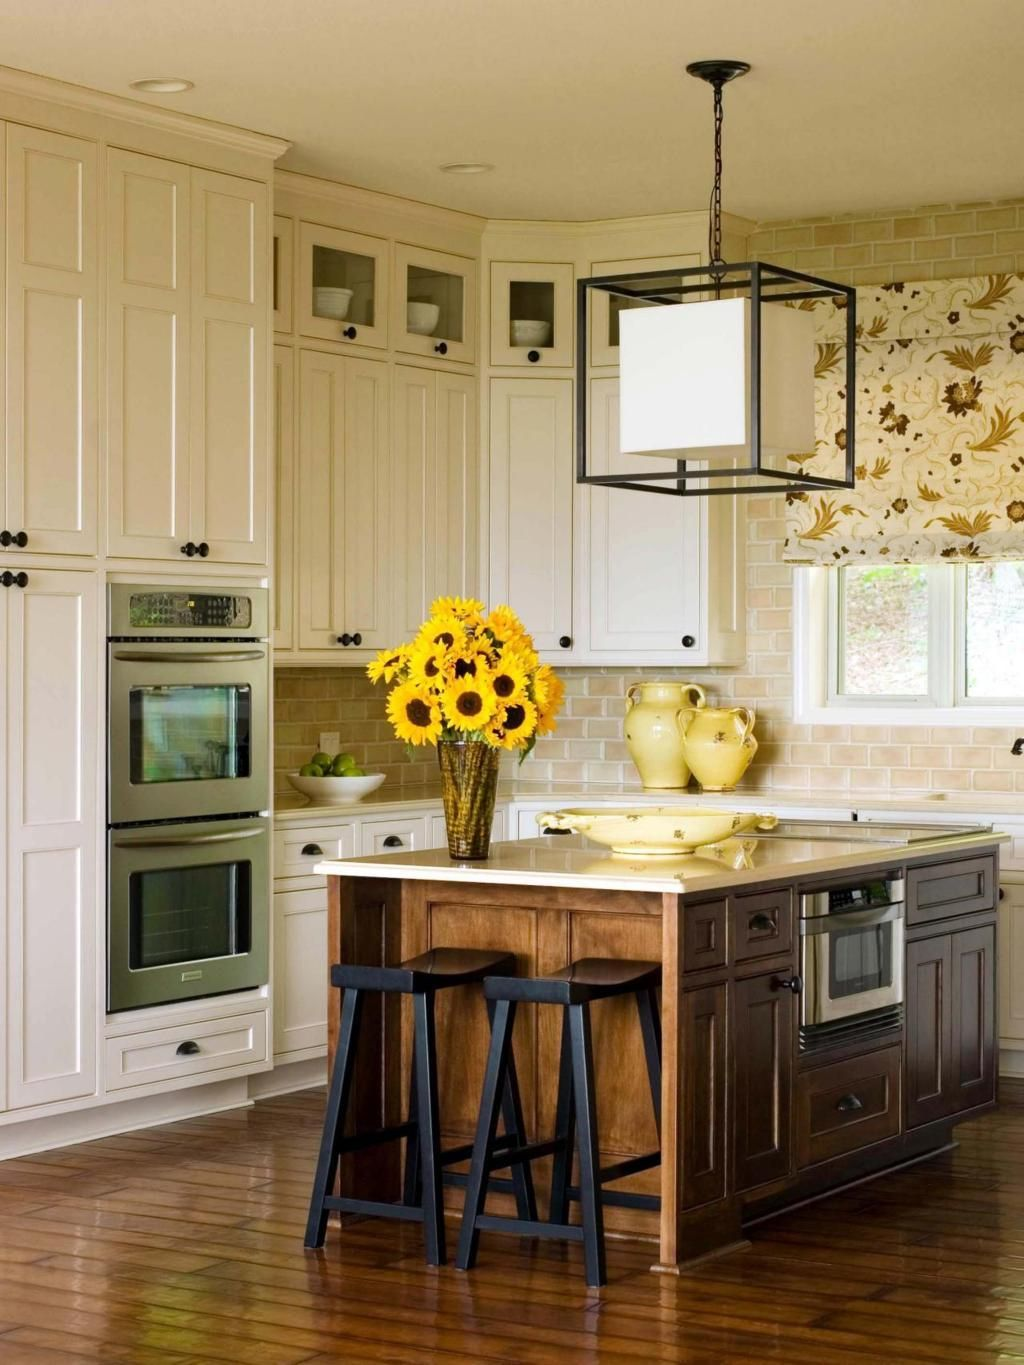 Rooms To Go Kitchen Islands Diy Countertop Ideas Check More At Http Www Entropiads